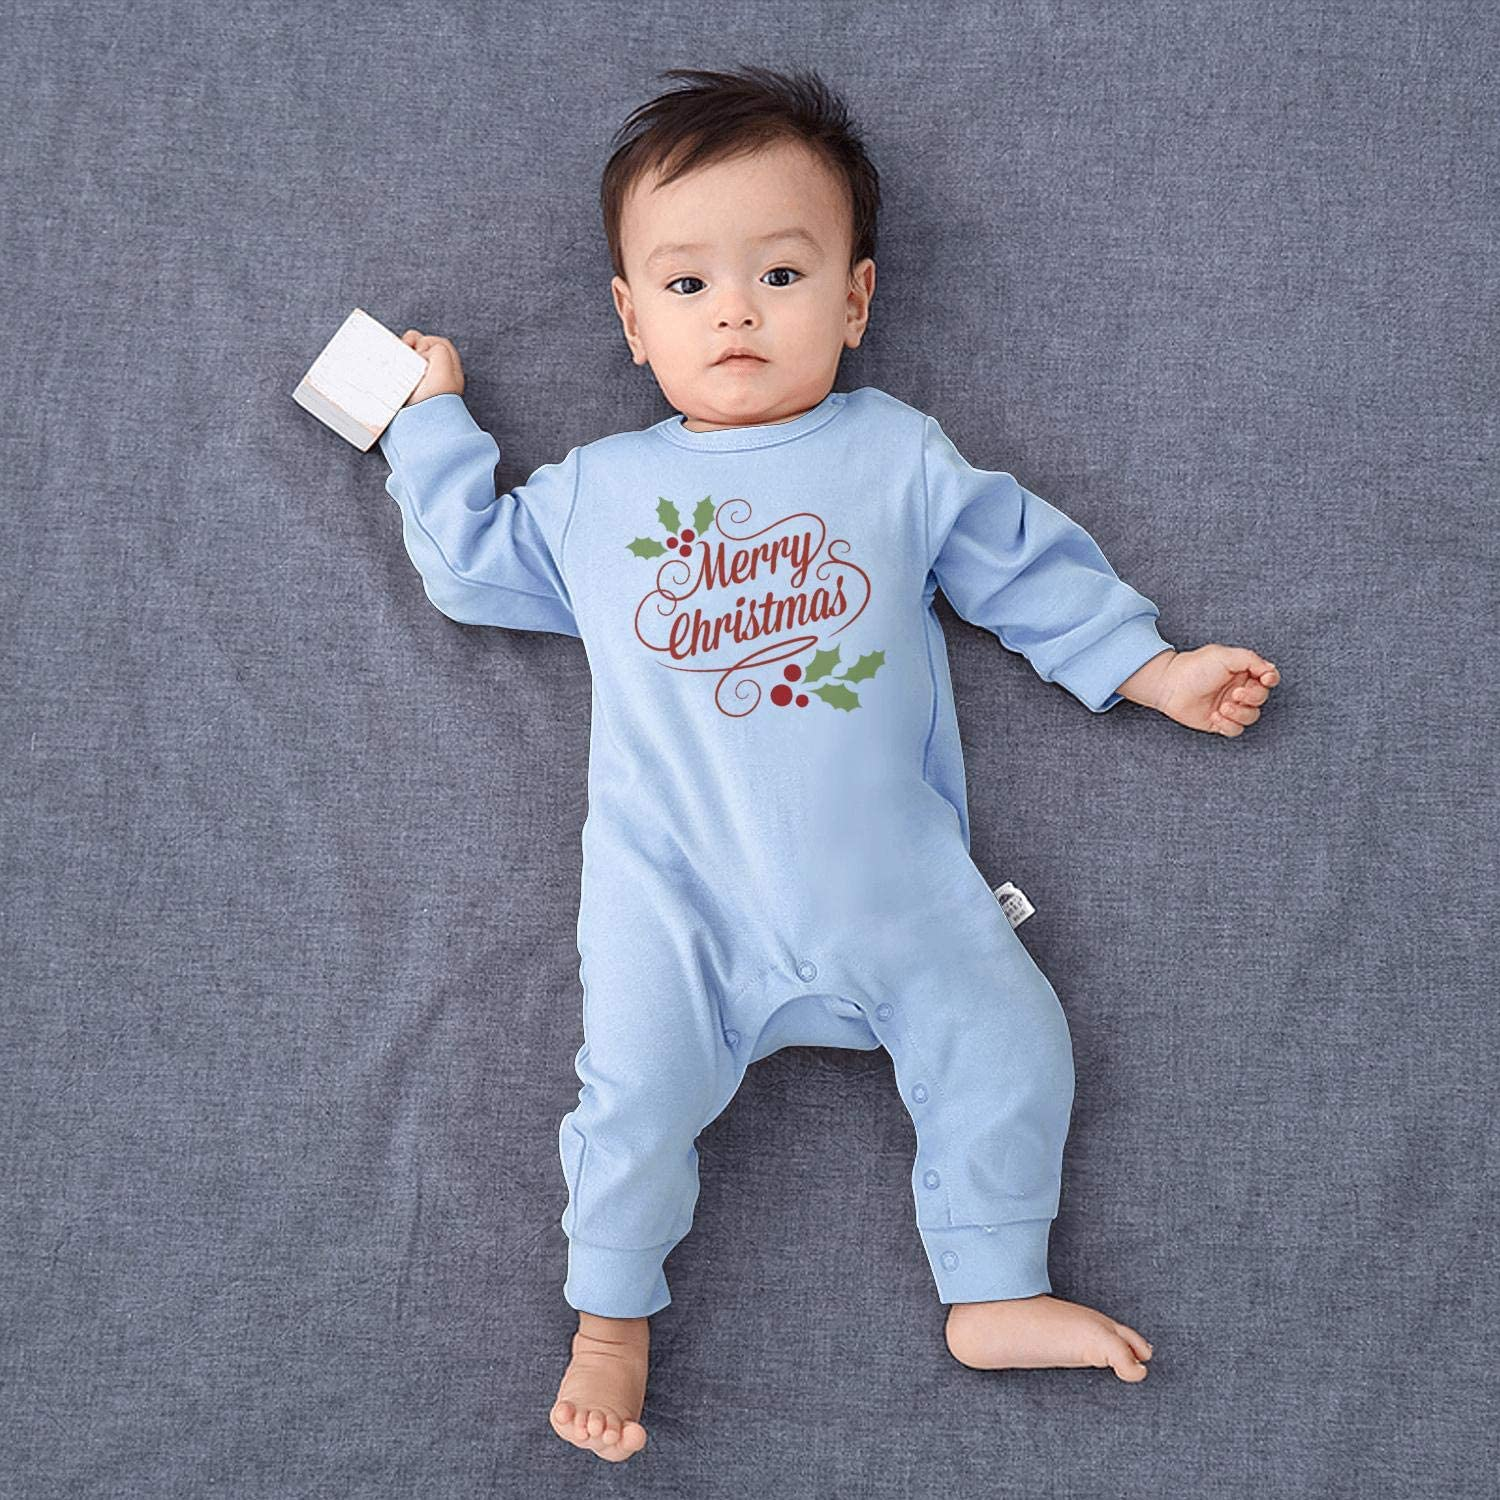 LHSCVJSEKL Merry Christmas Baby Onesie Organic Cotton Suit Soft Toddler Long Sleeve Onesies